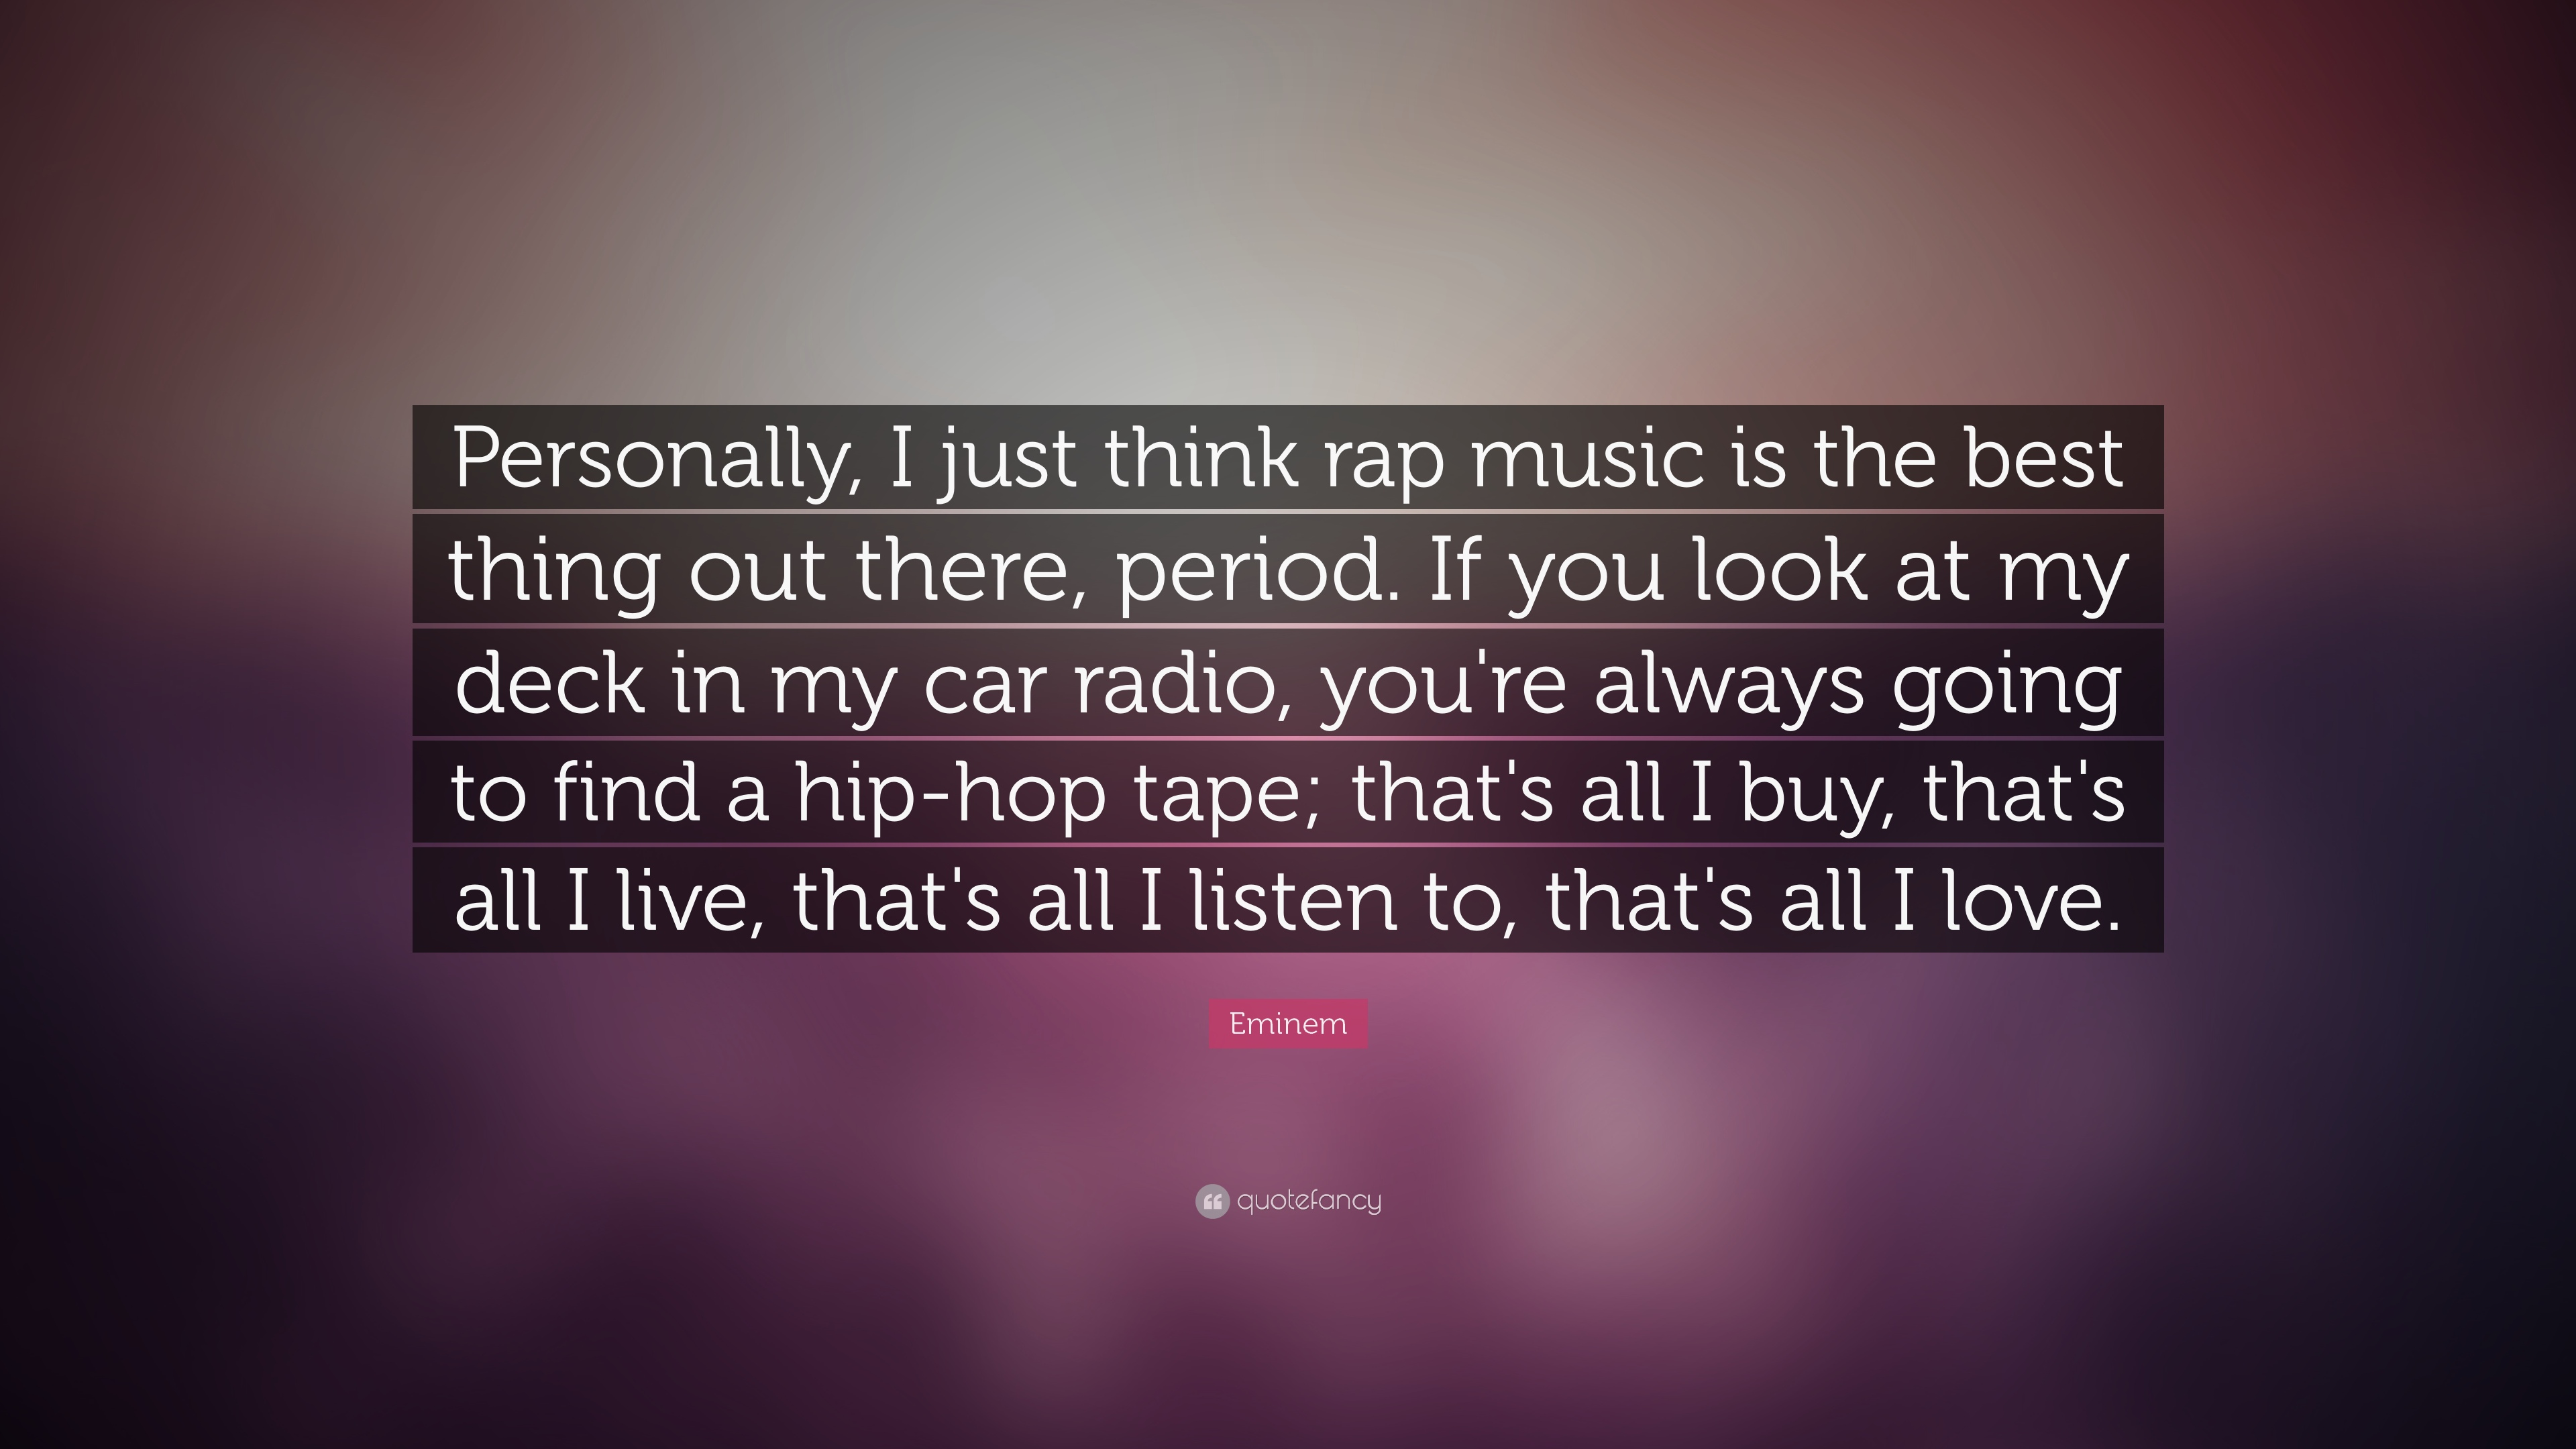 eminem quote personally i just think rap music is the